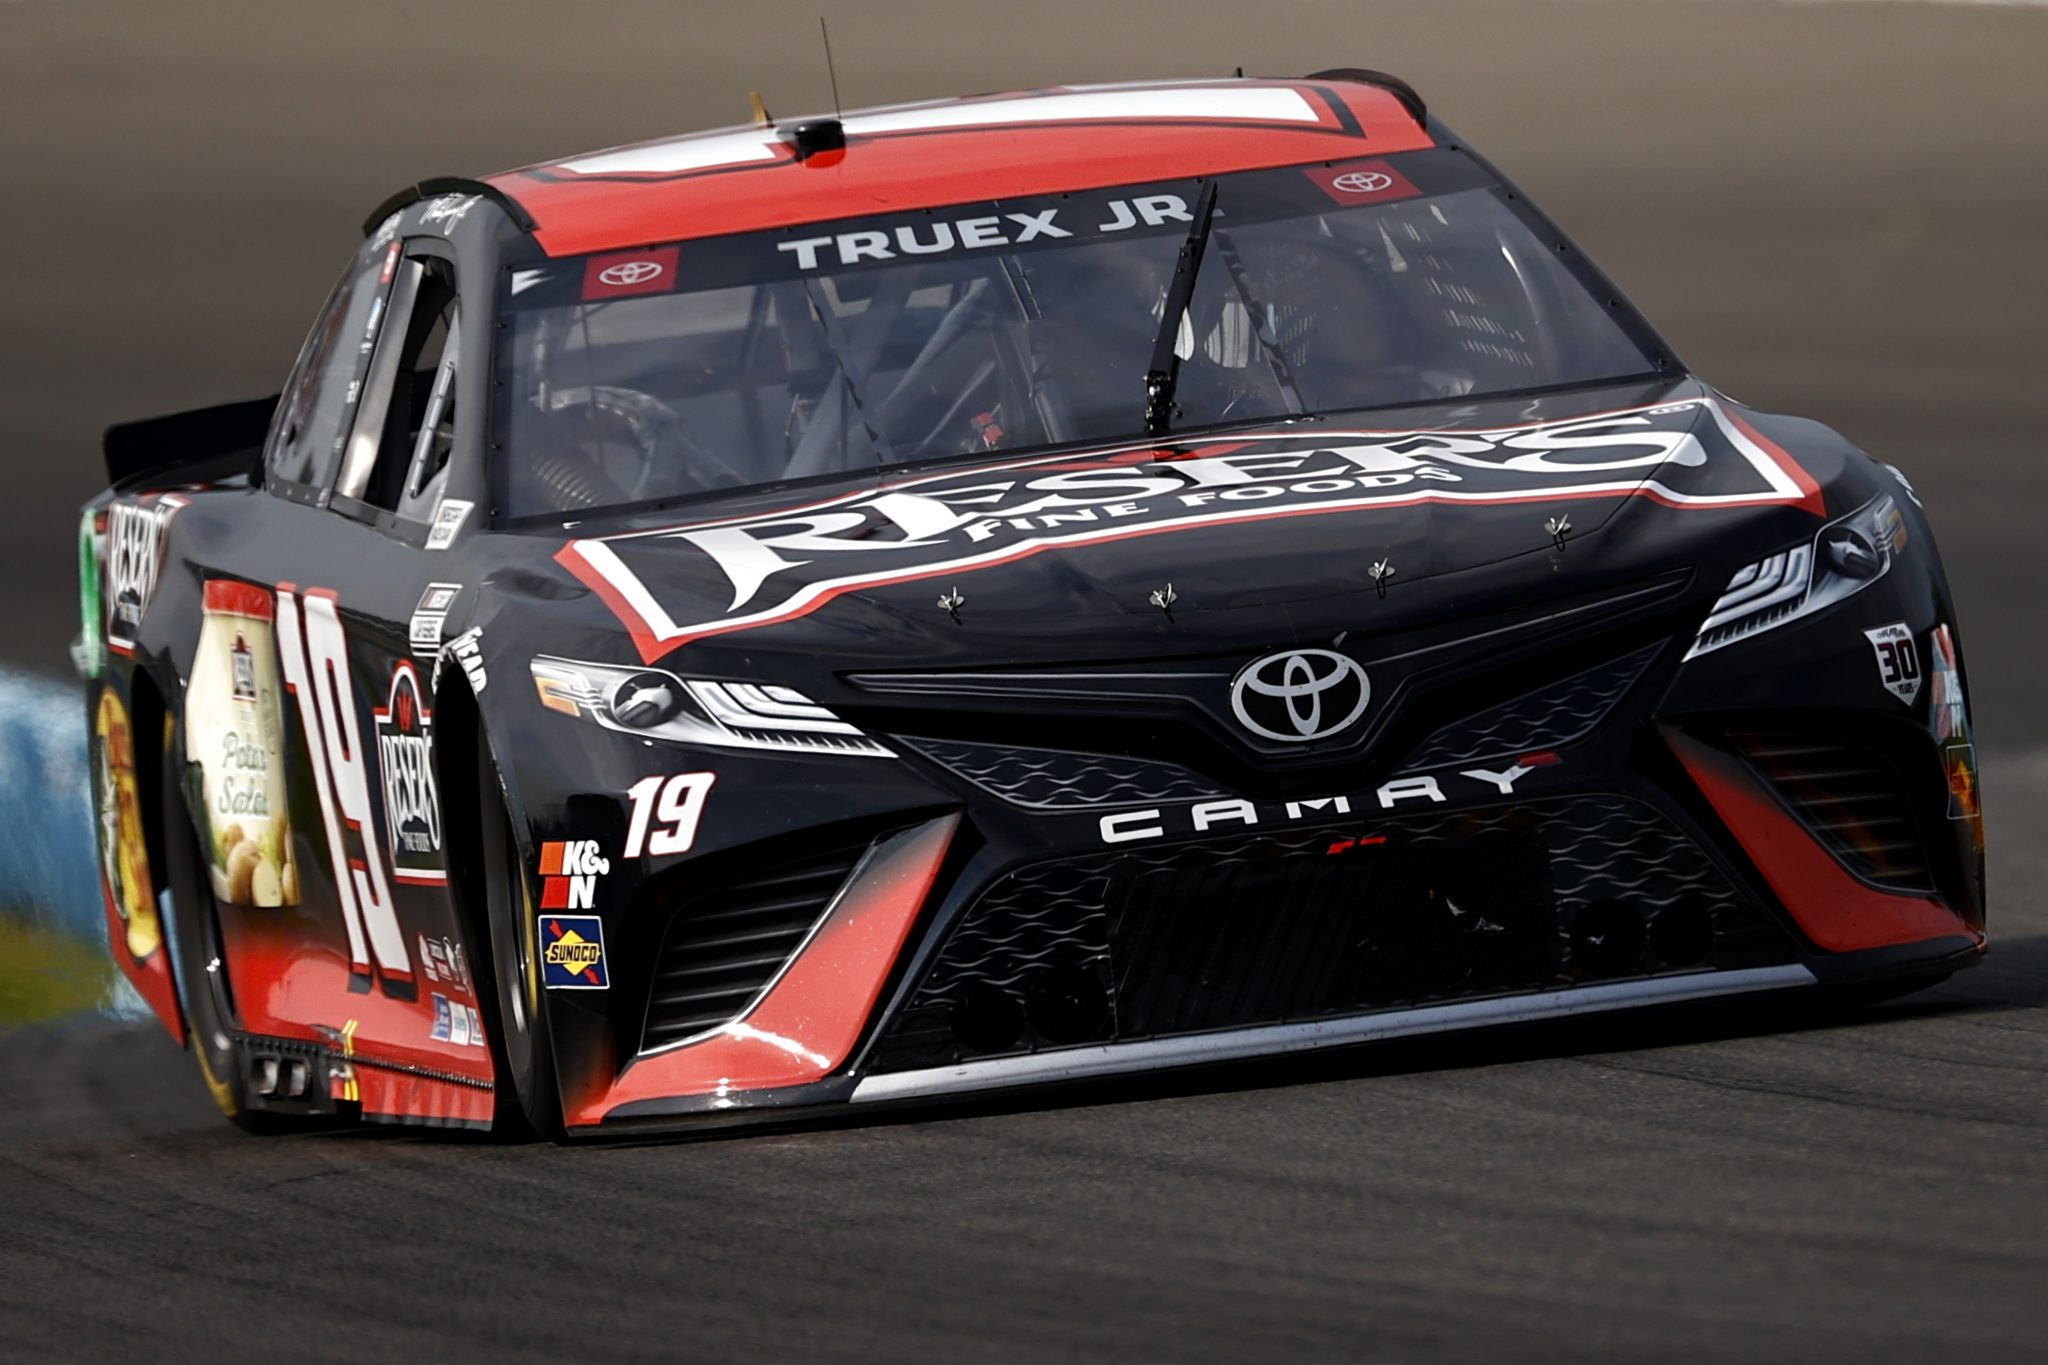 WATKINS GLEN, NEW YORK - AUGUST 08: Martin Truex Jr., driver of the #19 Reser's Fine Foods Toyota, drives during the NASCAR Cup Series Go Bowling at The Glen at Watkins Glen International on August 08, 2021 in Watkins Glen, New York. (Photo by Jared C. Tilton/Getty Images) | Getty Images